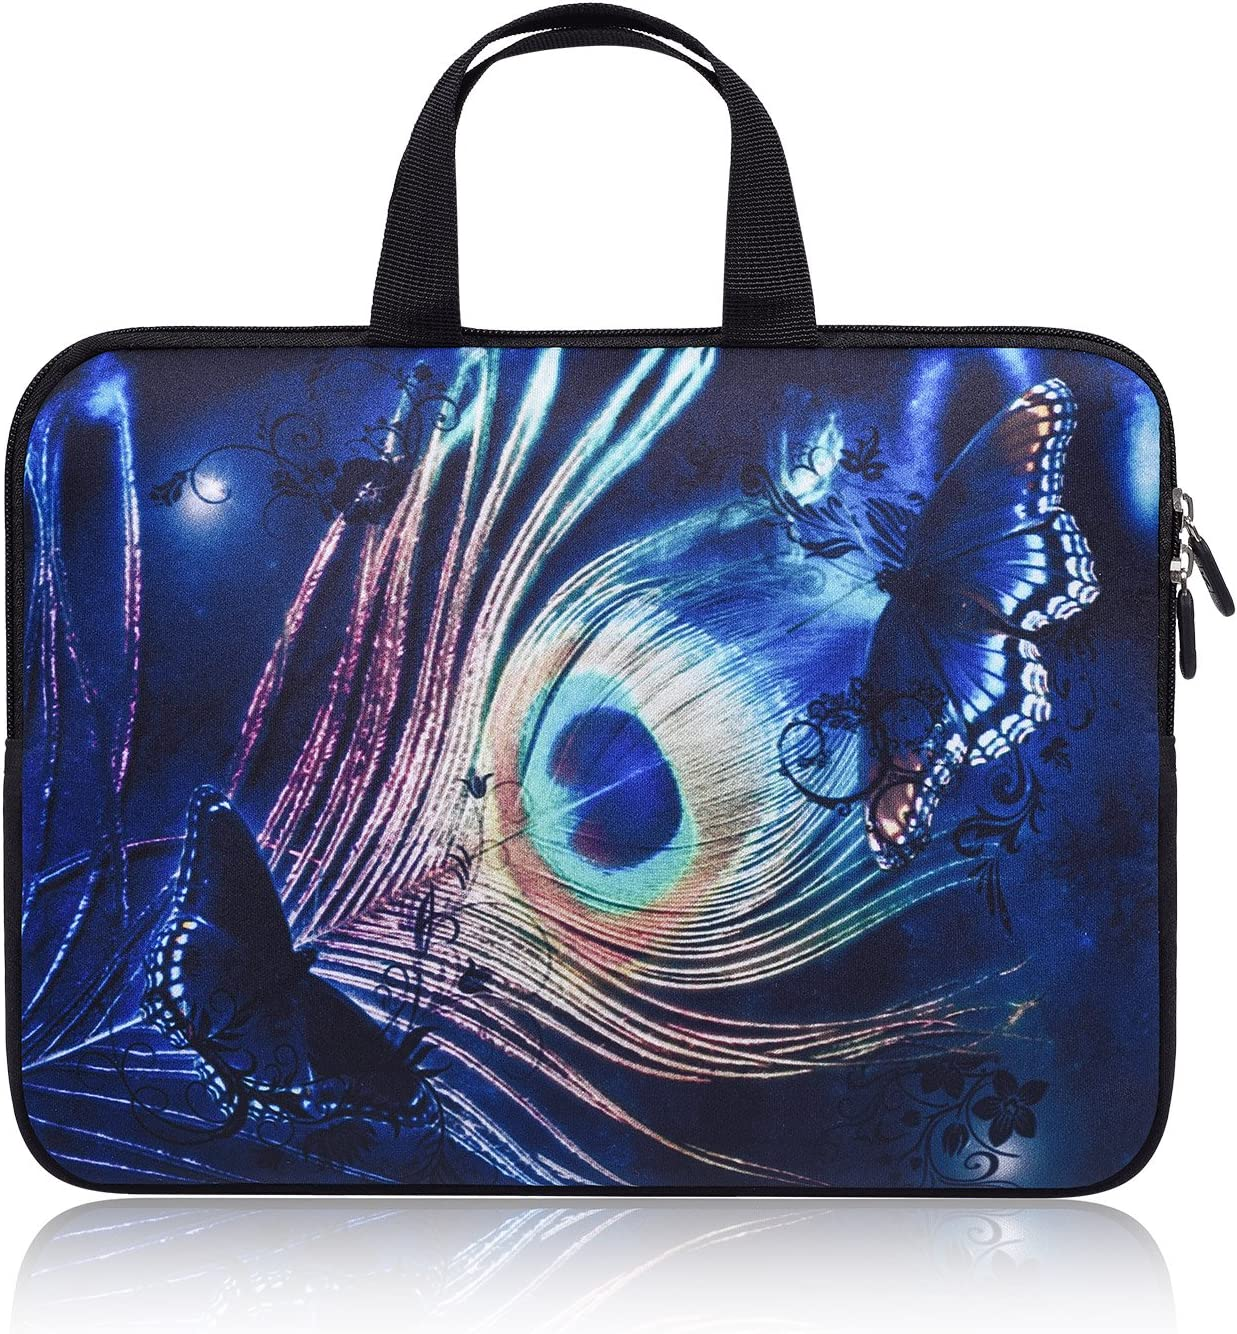 """11-12.2 Inch Chromebook Carrying Laptop Bag Sleeve Case with Handle Compatible with Acer Chromebook R 11/Samsung Google 11.6"""" Chromebook/HP Chromebook 11/ASUS Chromebook C200MA(Blue Peacock Feather)"""